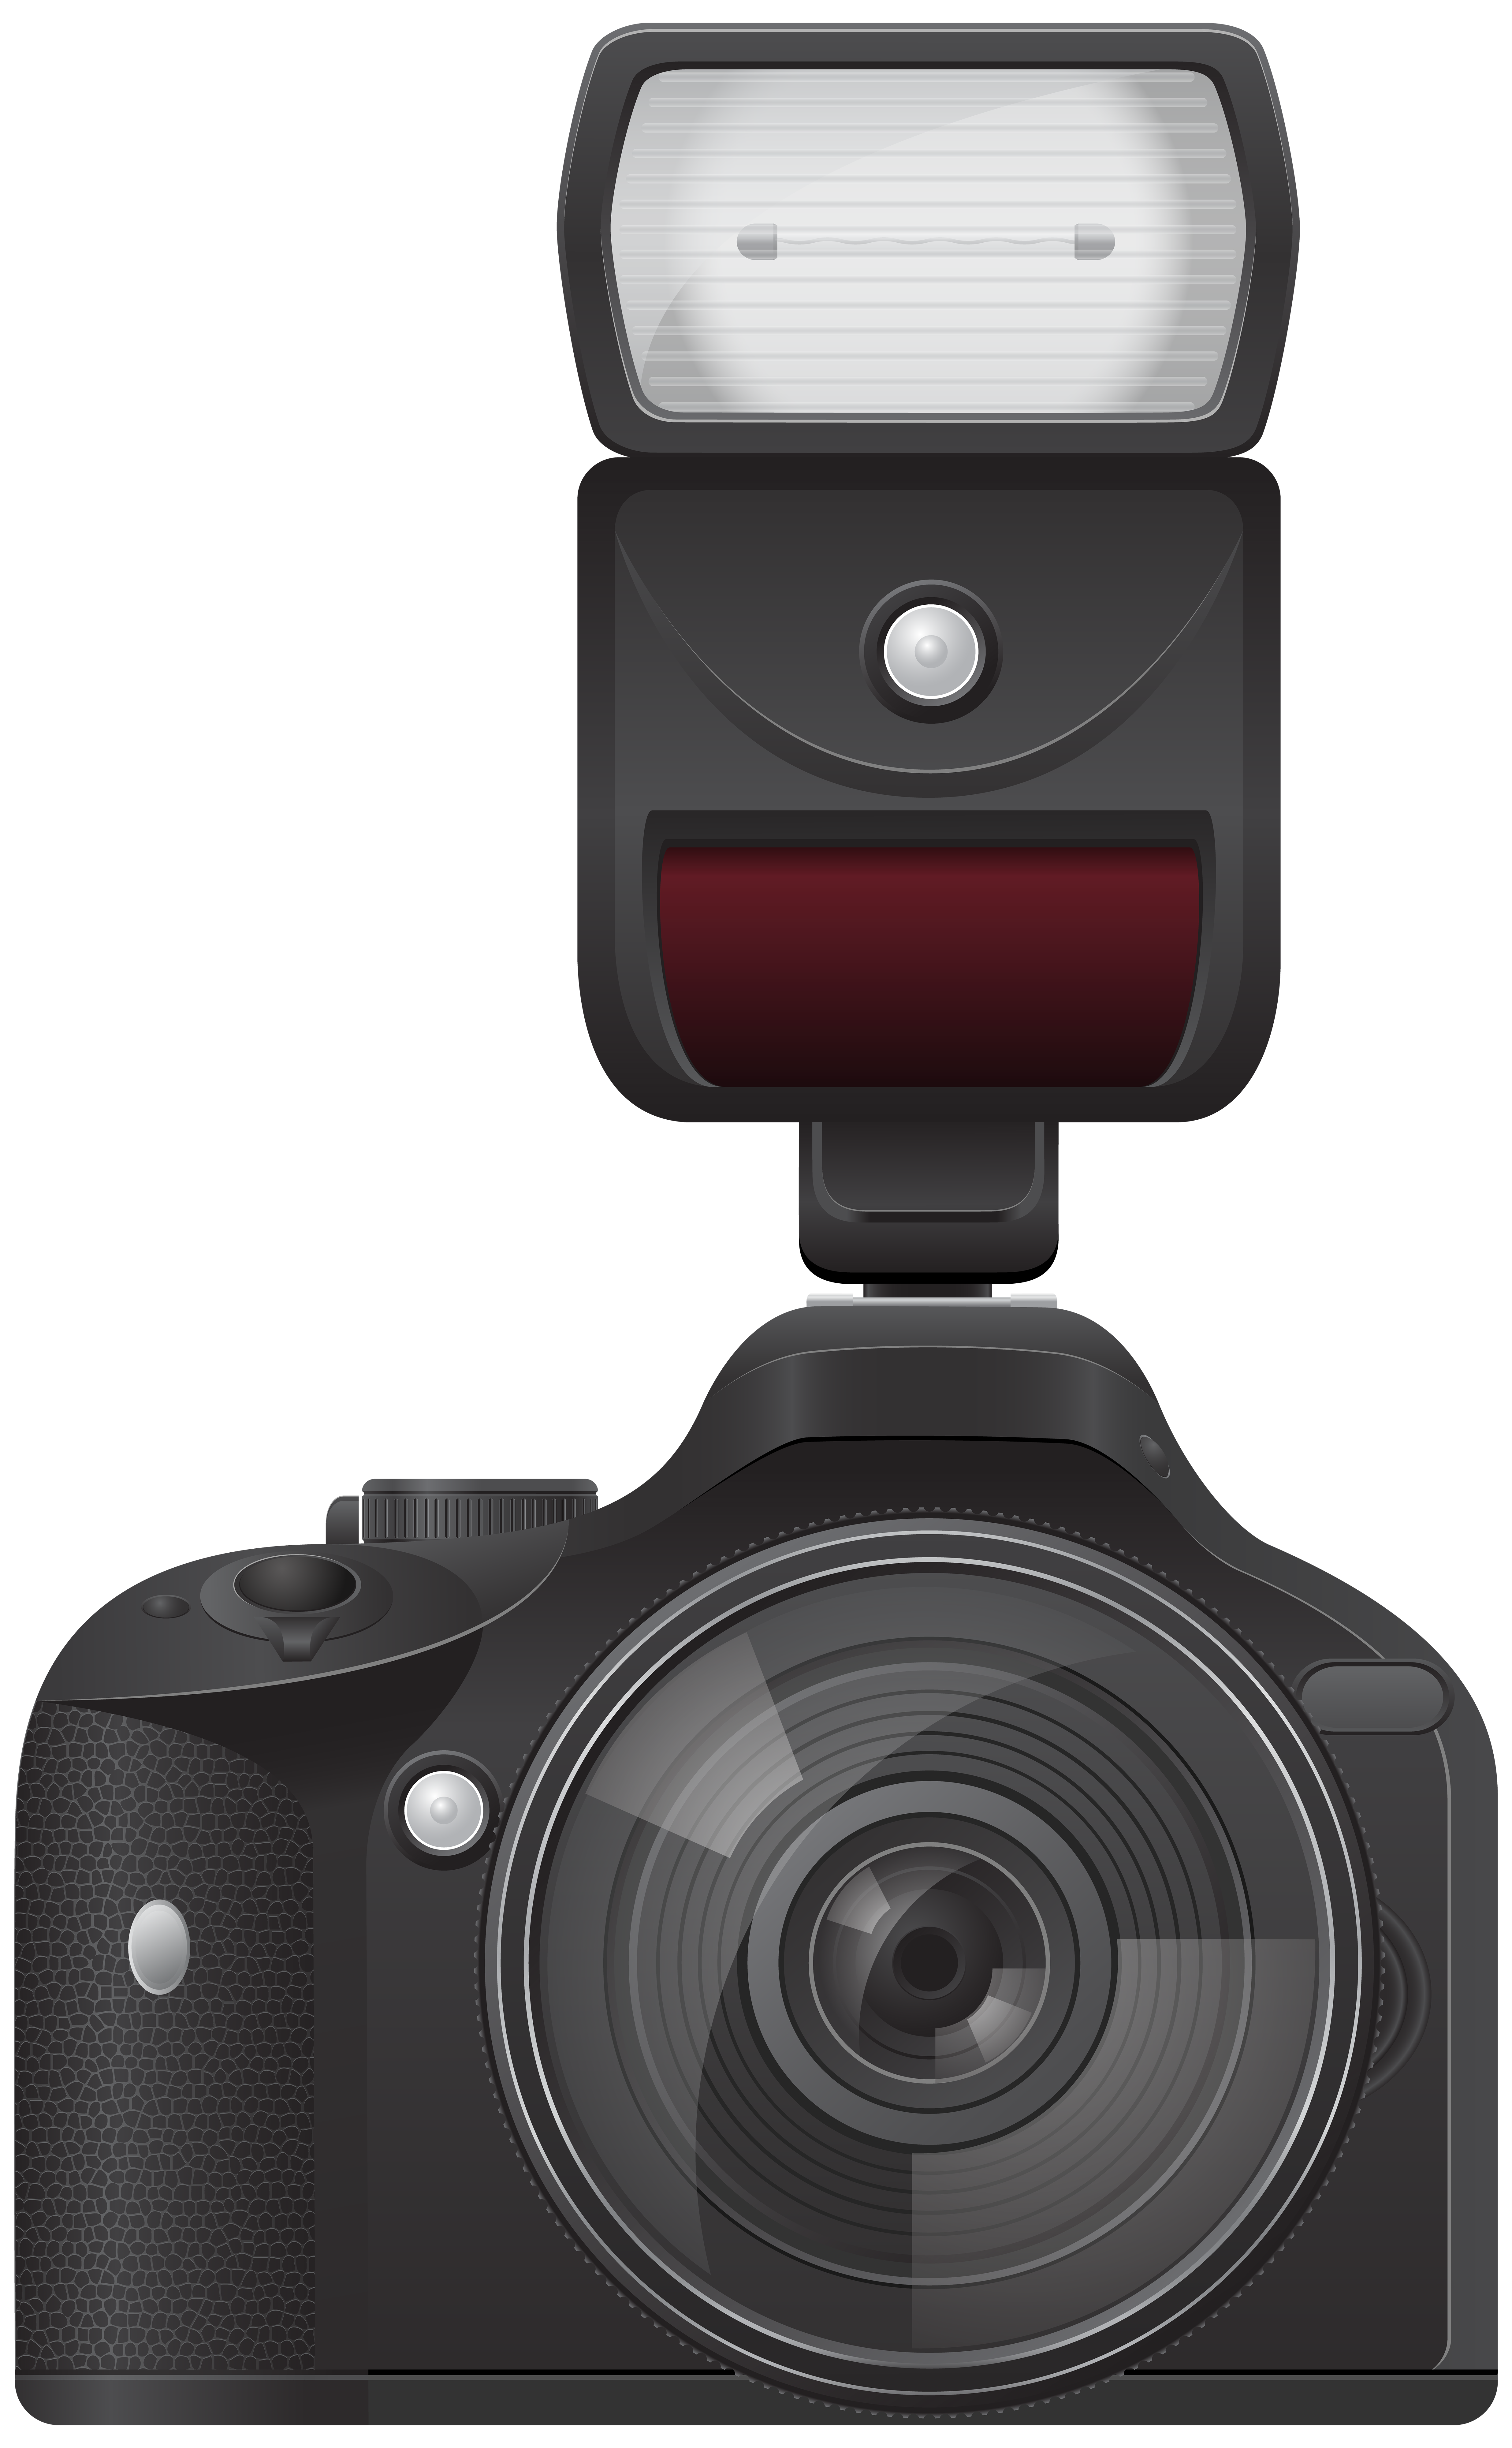 With flash transparent png. Flowers clipart camera